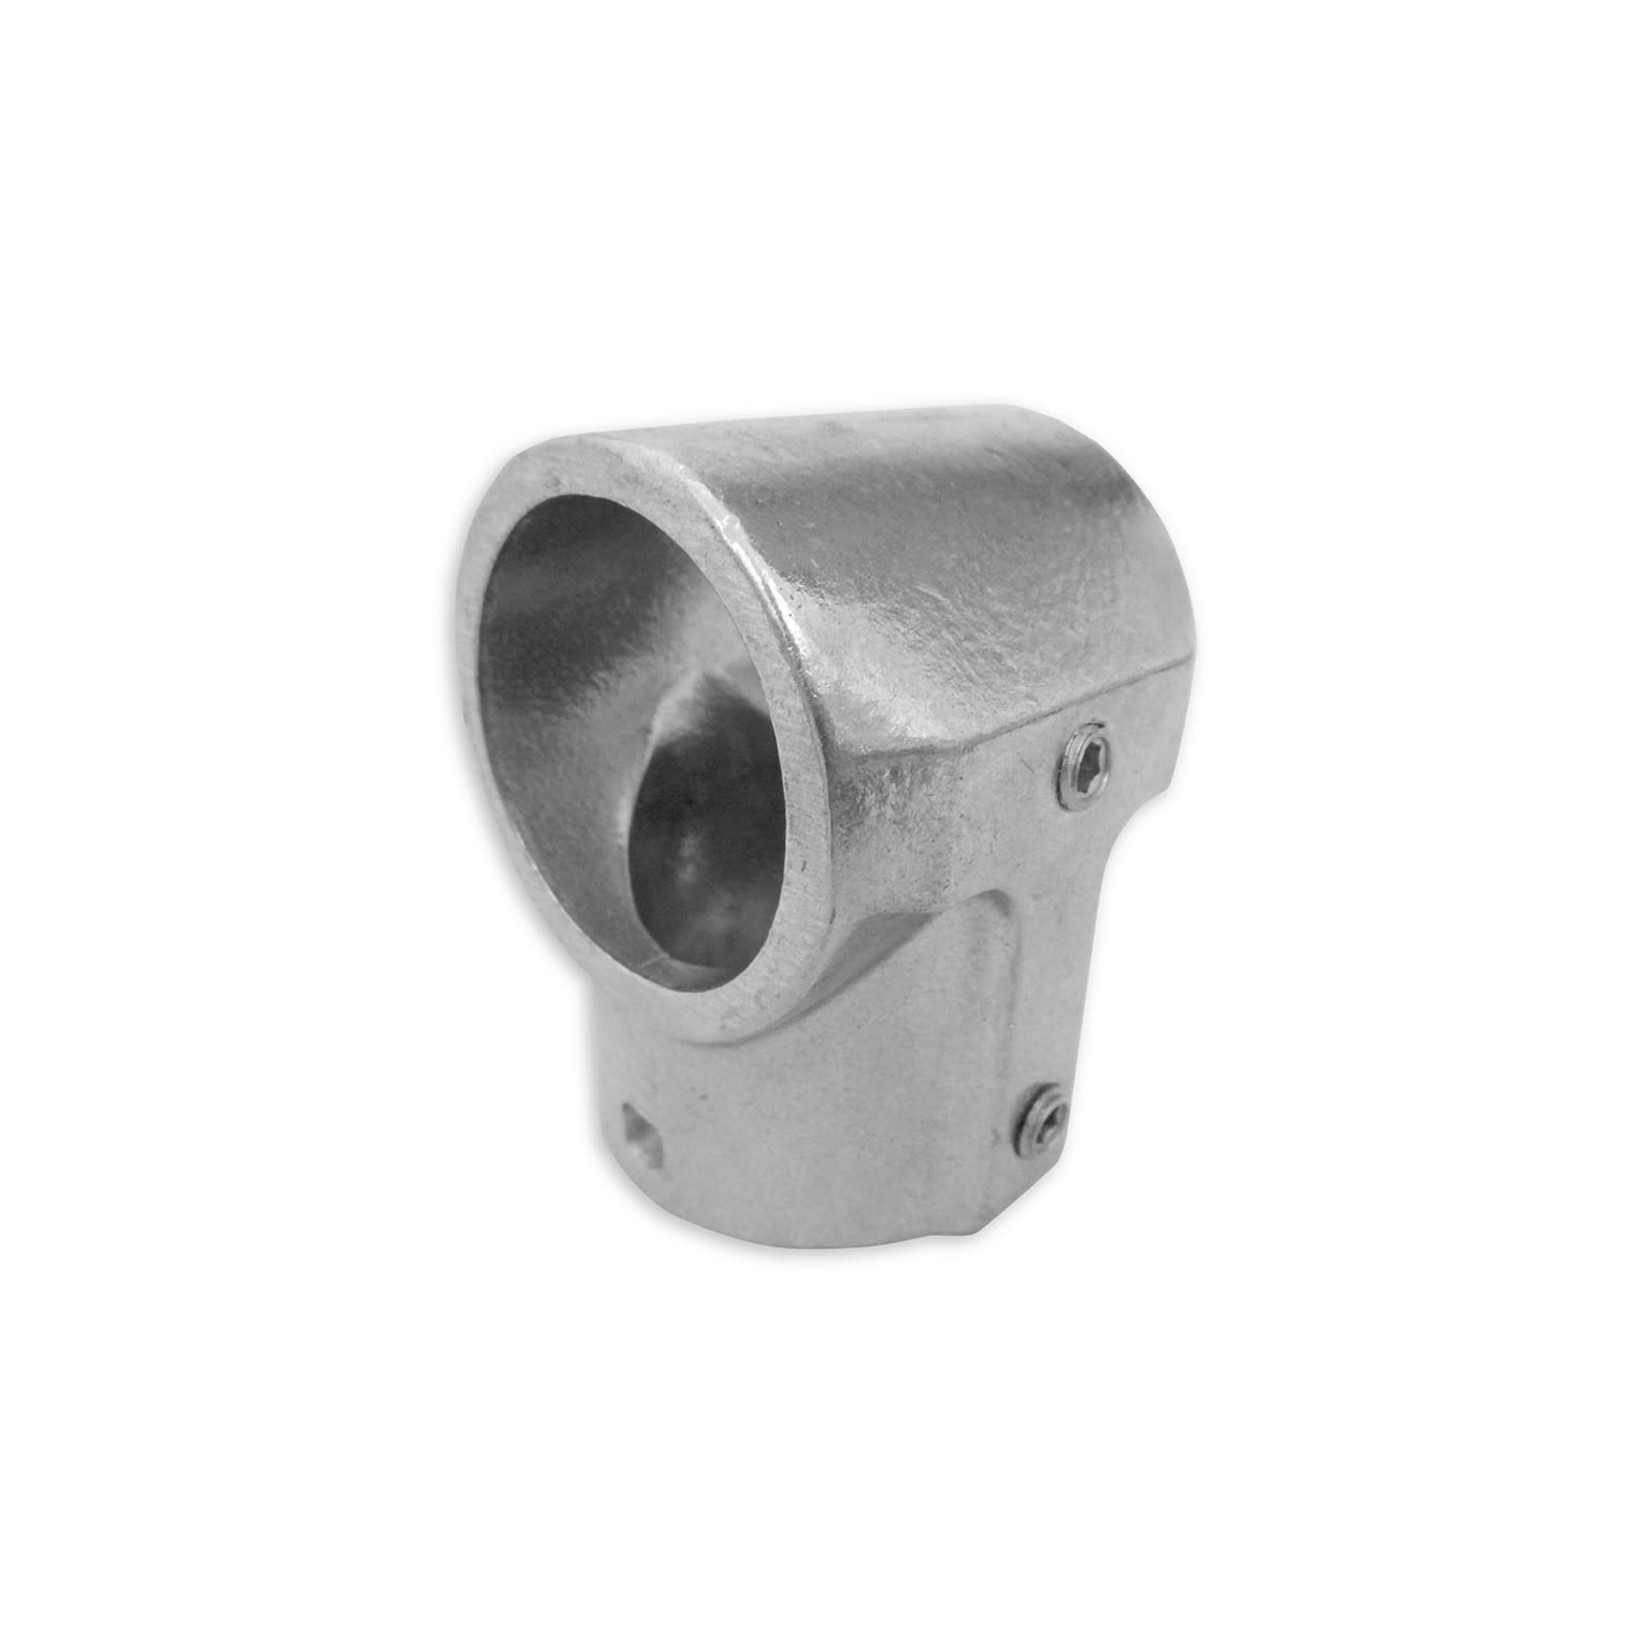 Down River Equipment 5ED - Tee Narrow/Drilled, 1-1/4 in x 1-1/2 in